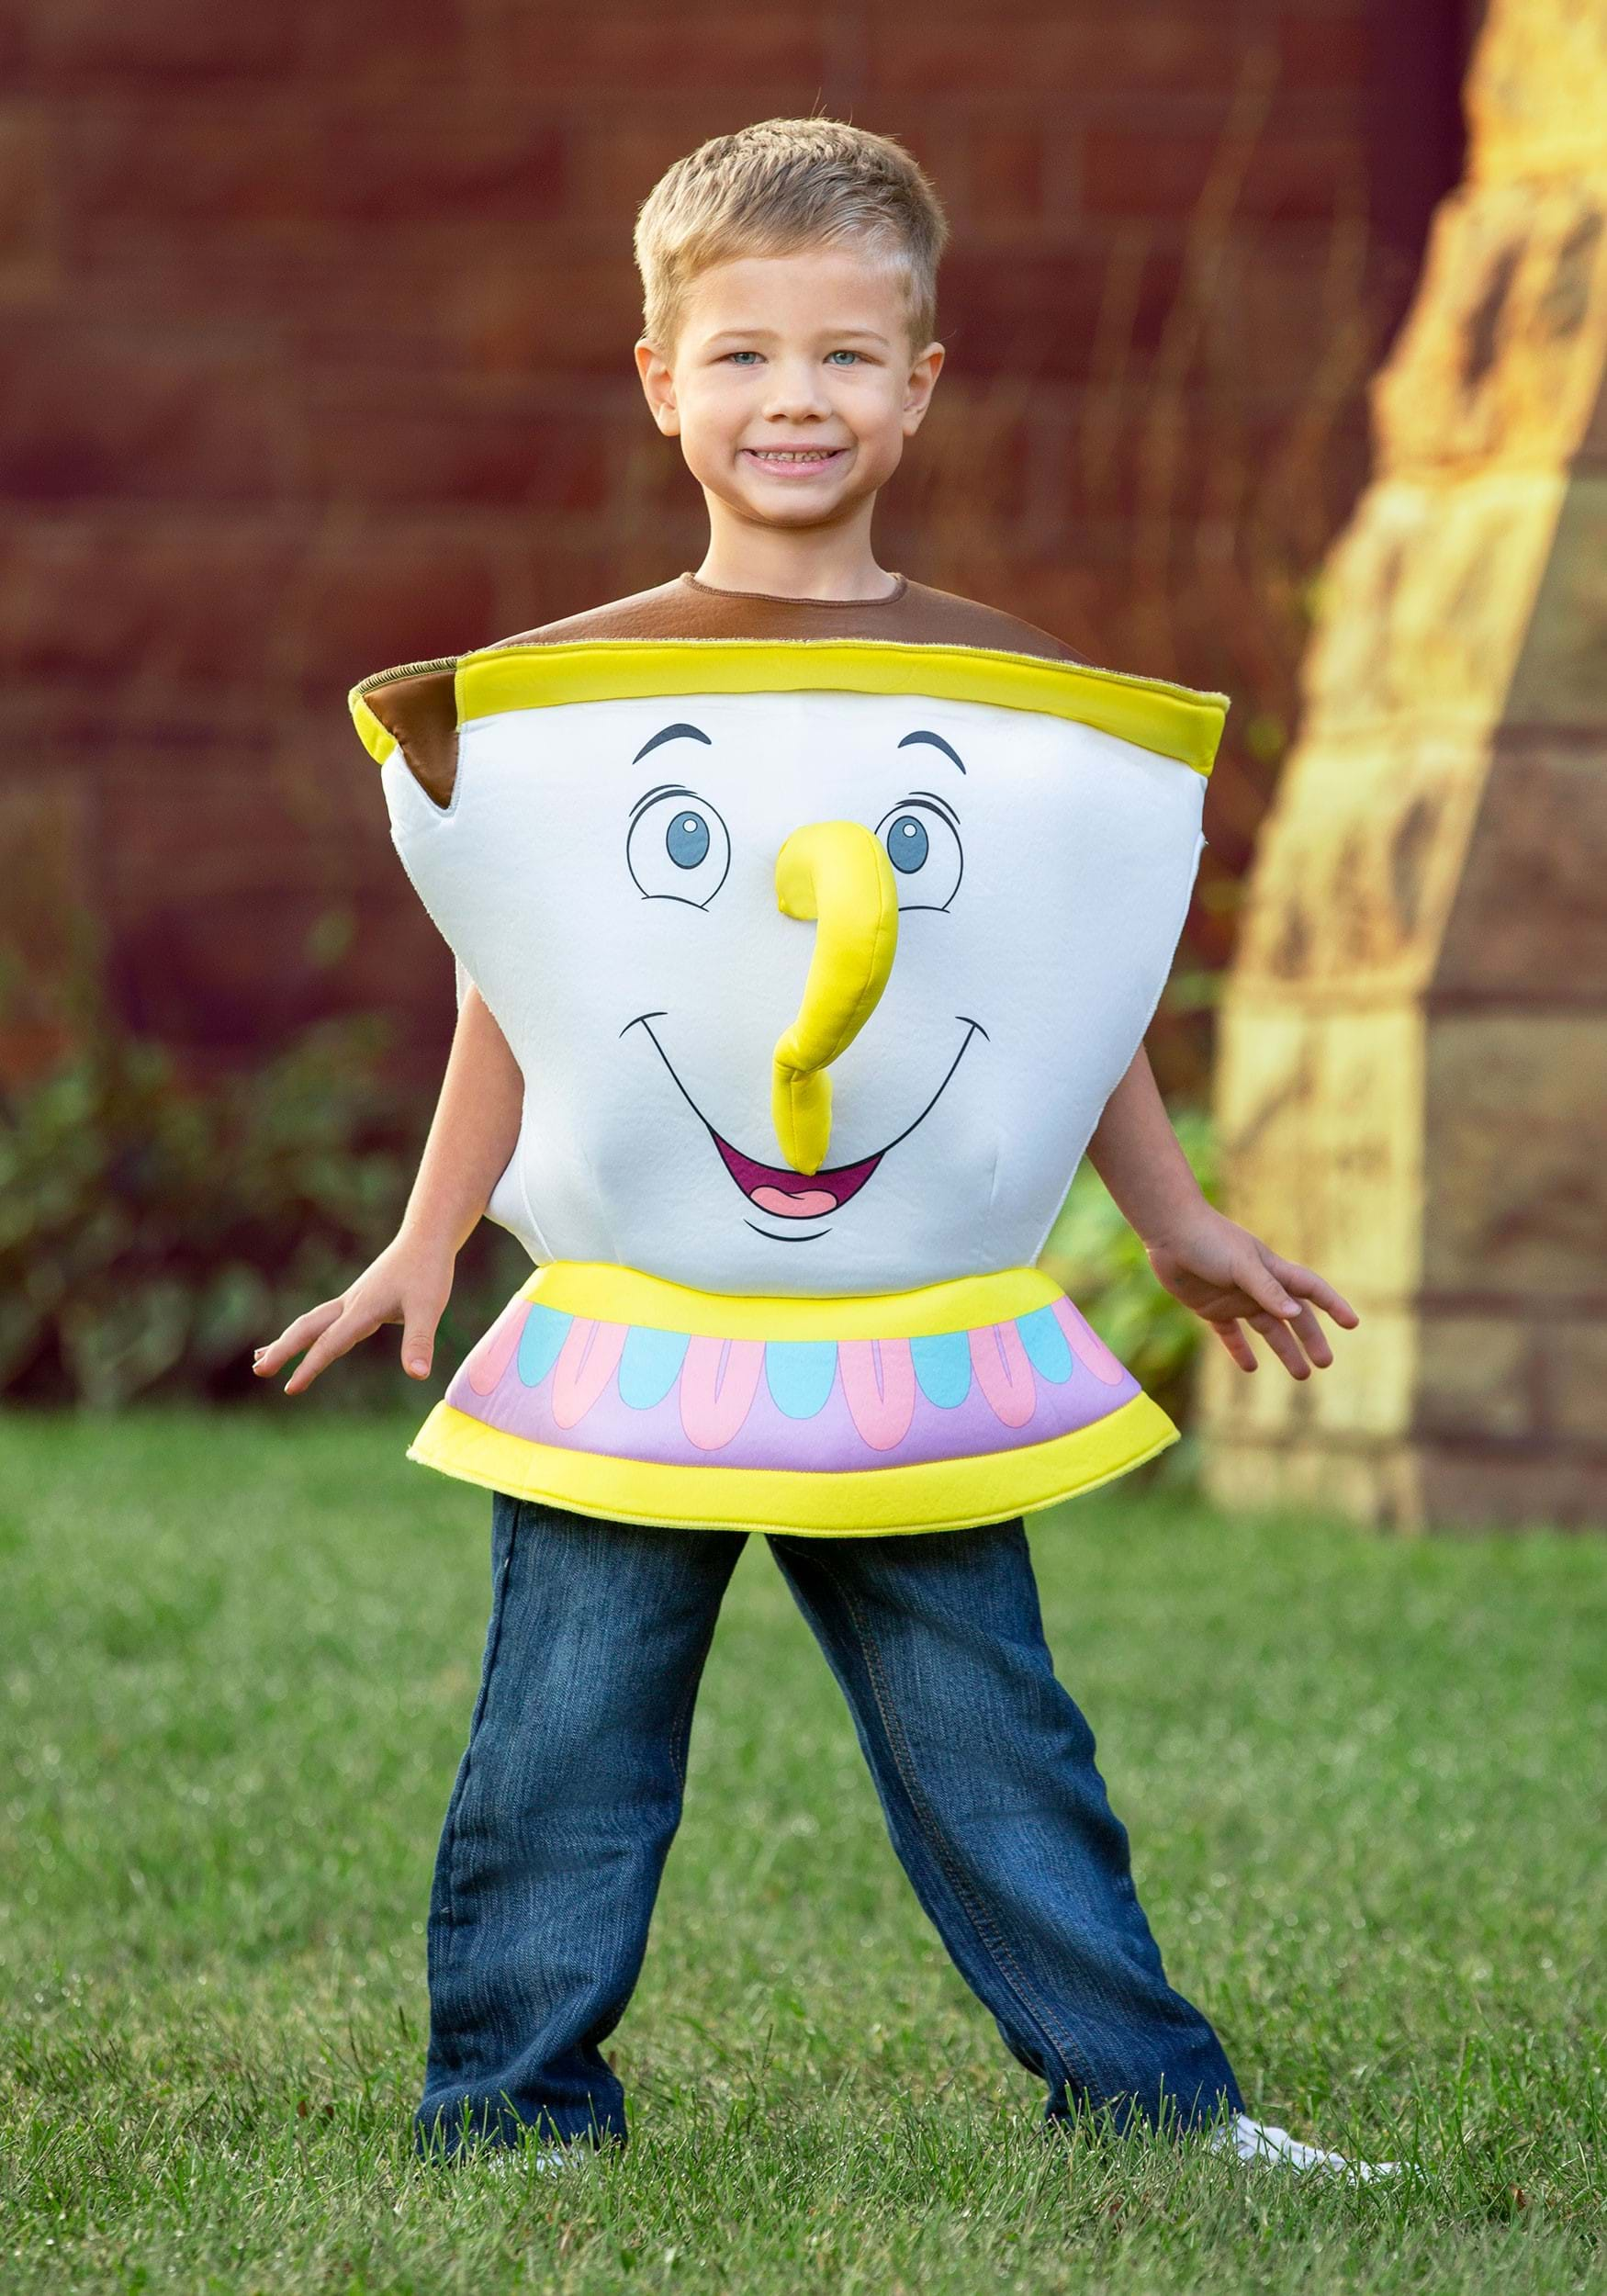 Chip Deluxe Toddler Costume From Beauty And The Beast